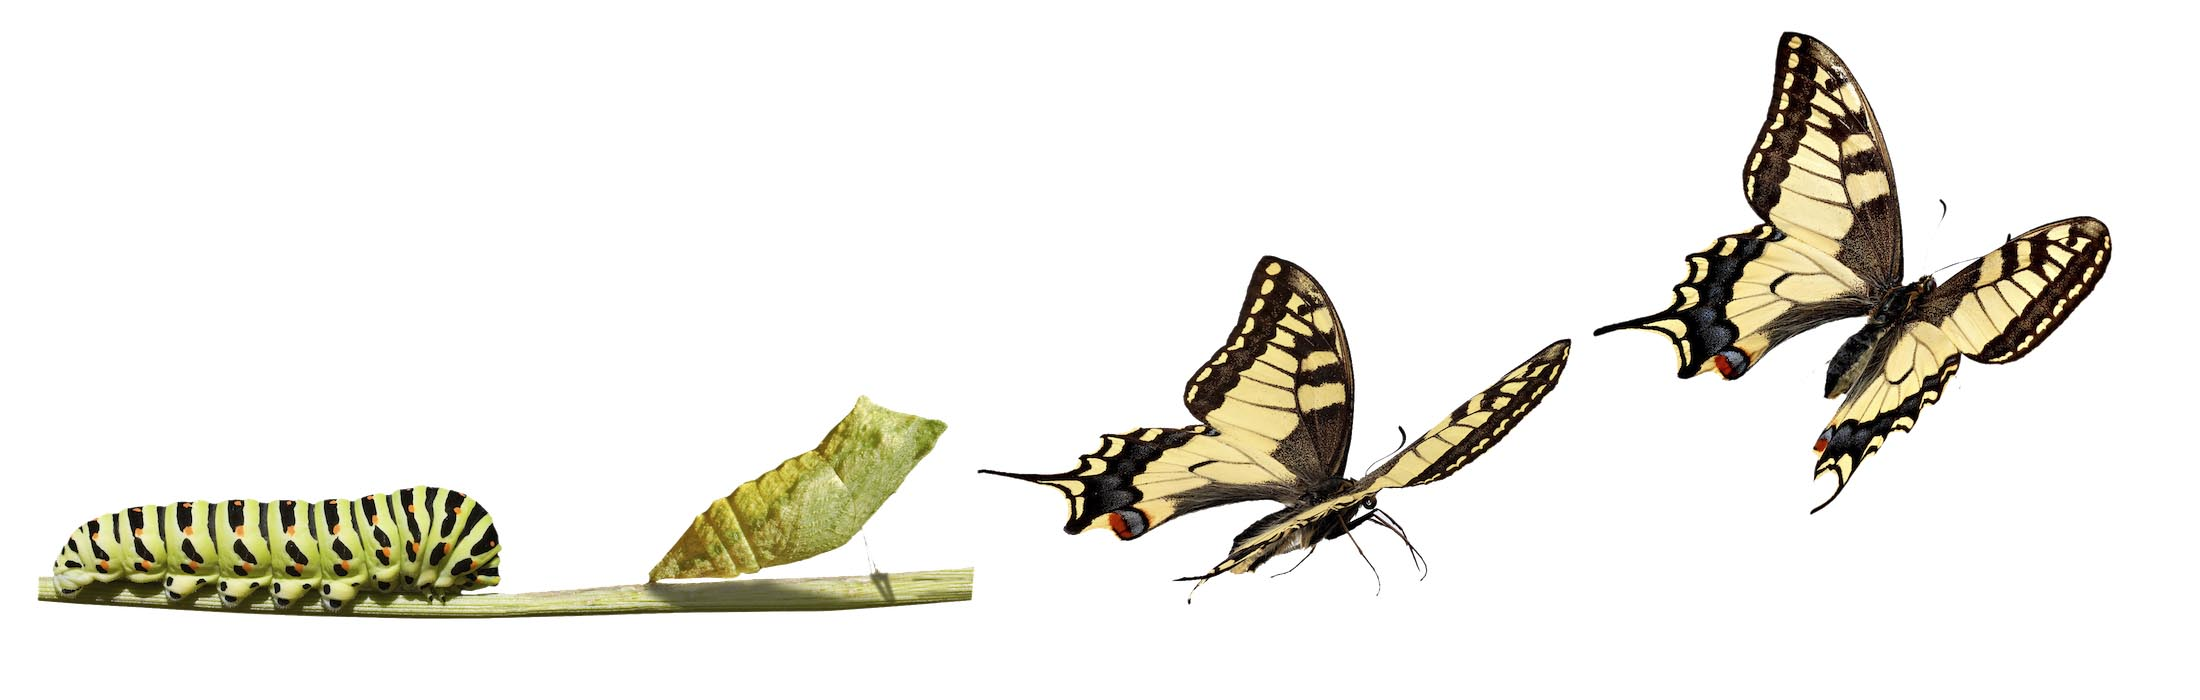 Caterpillar Into Butterfly PNG